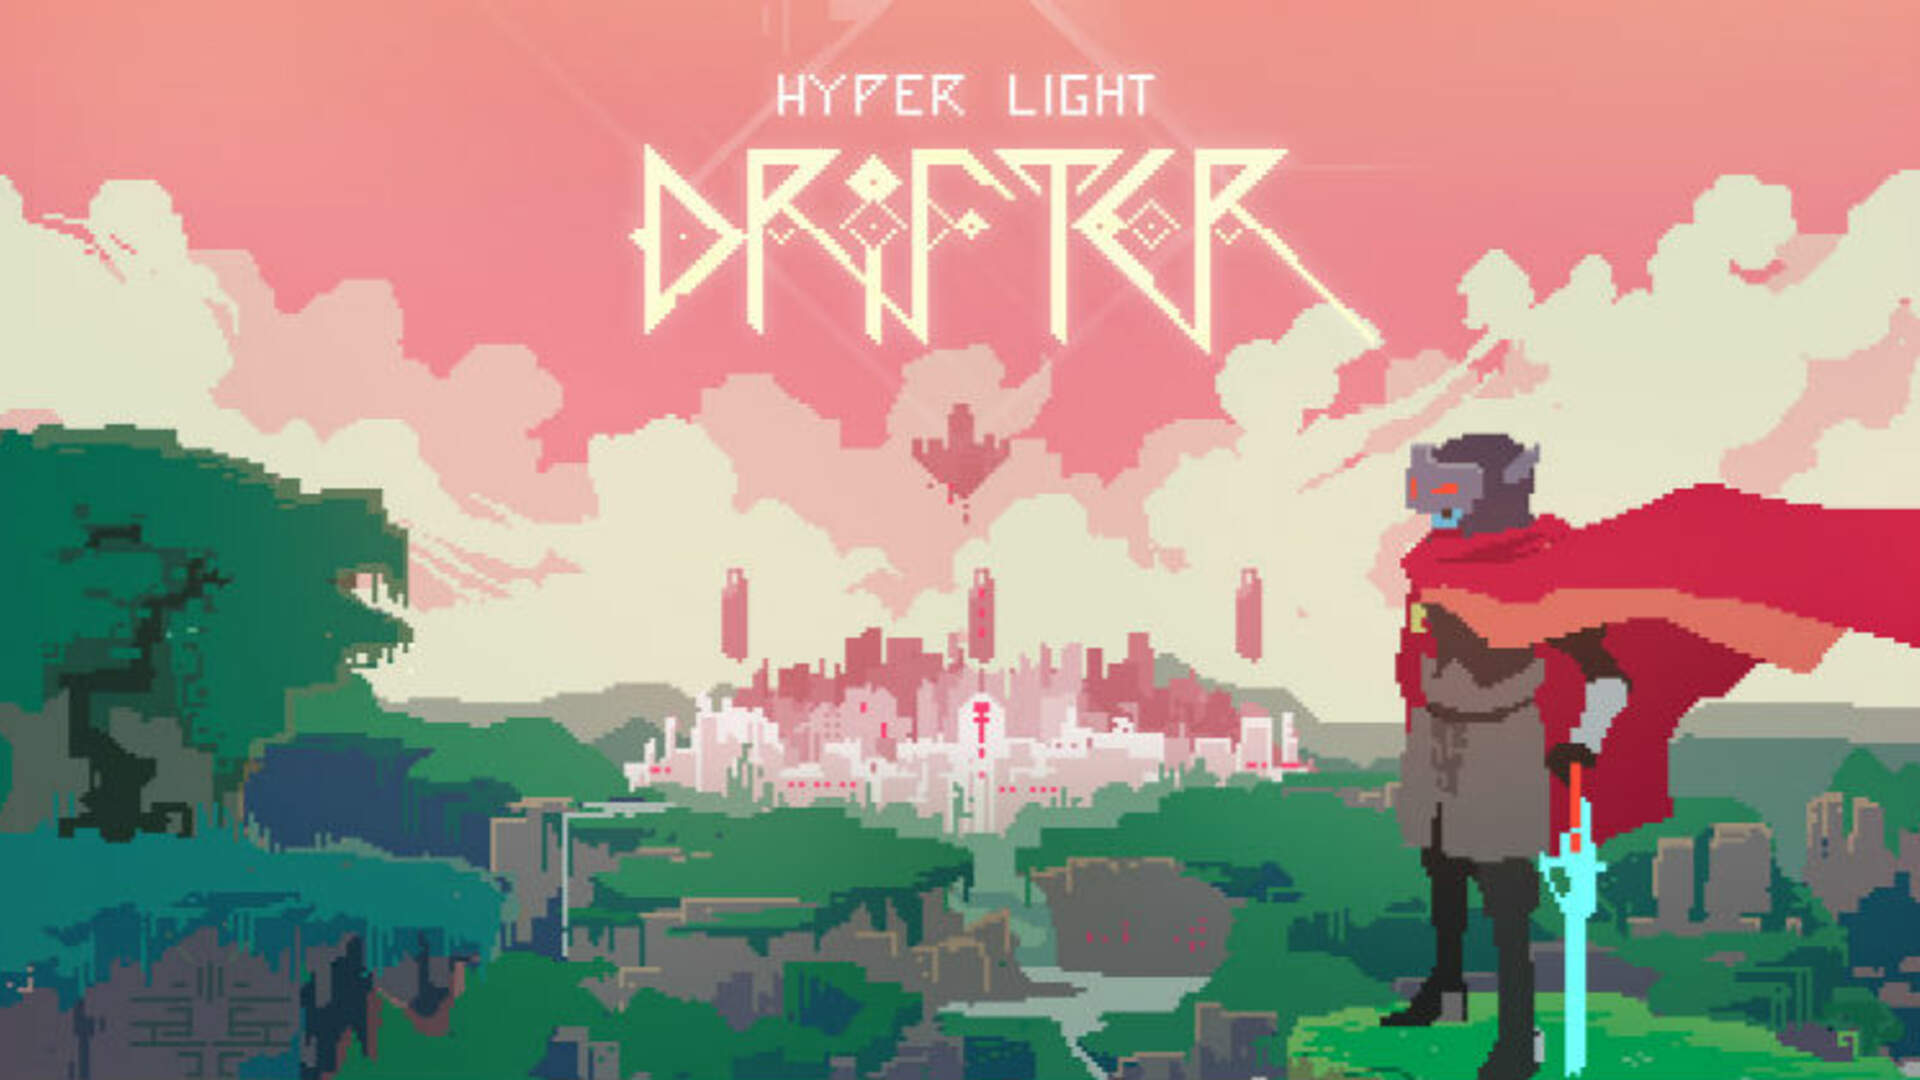 To Survive Hyper Light Drifter's Brutal World, You Must Wander